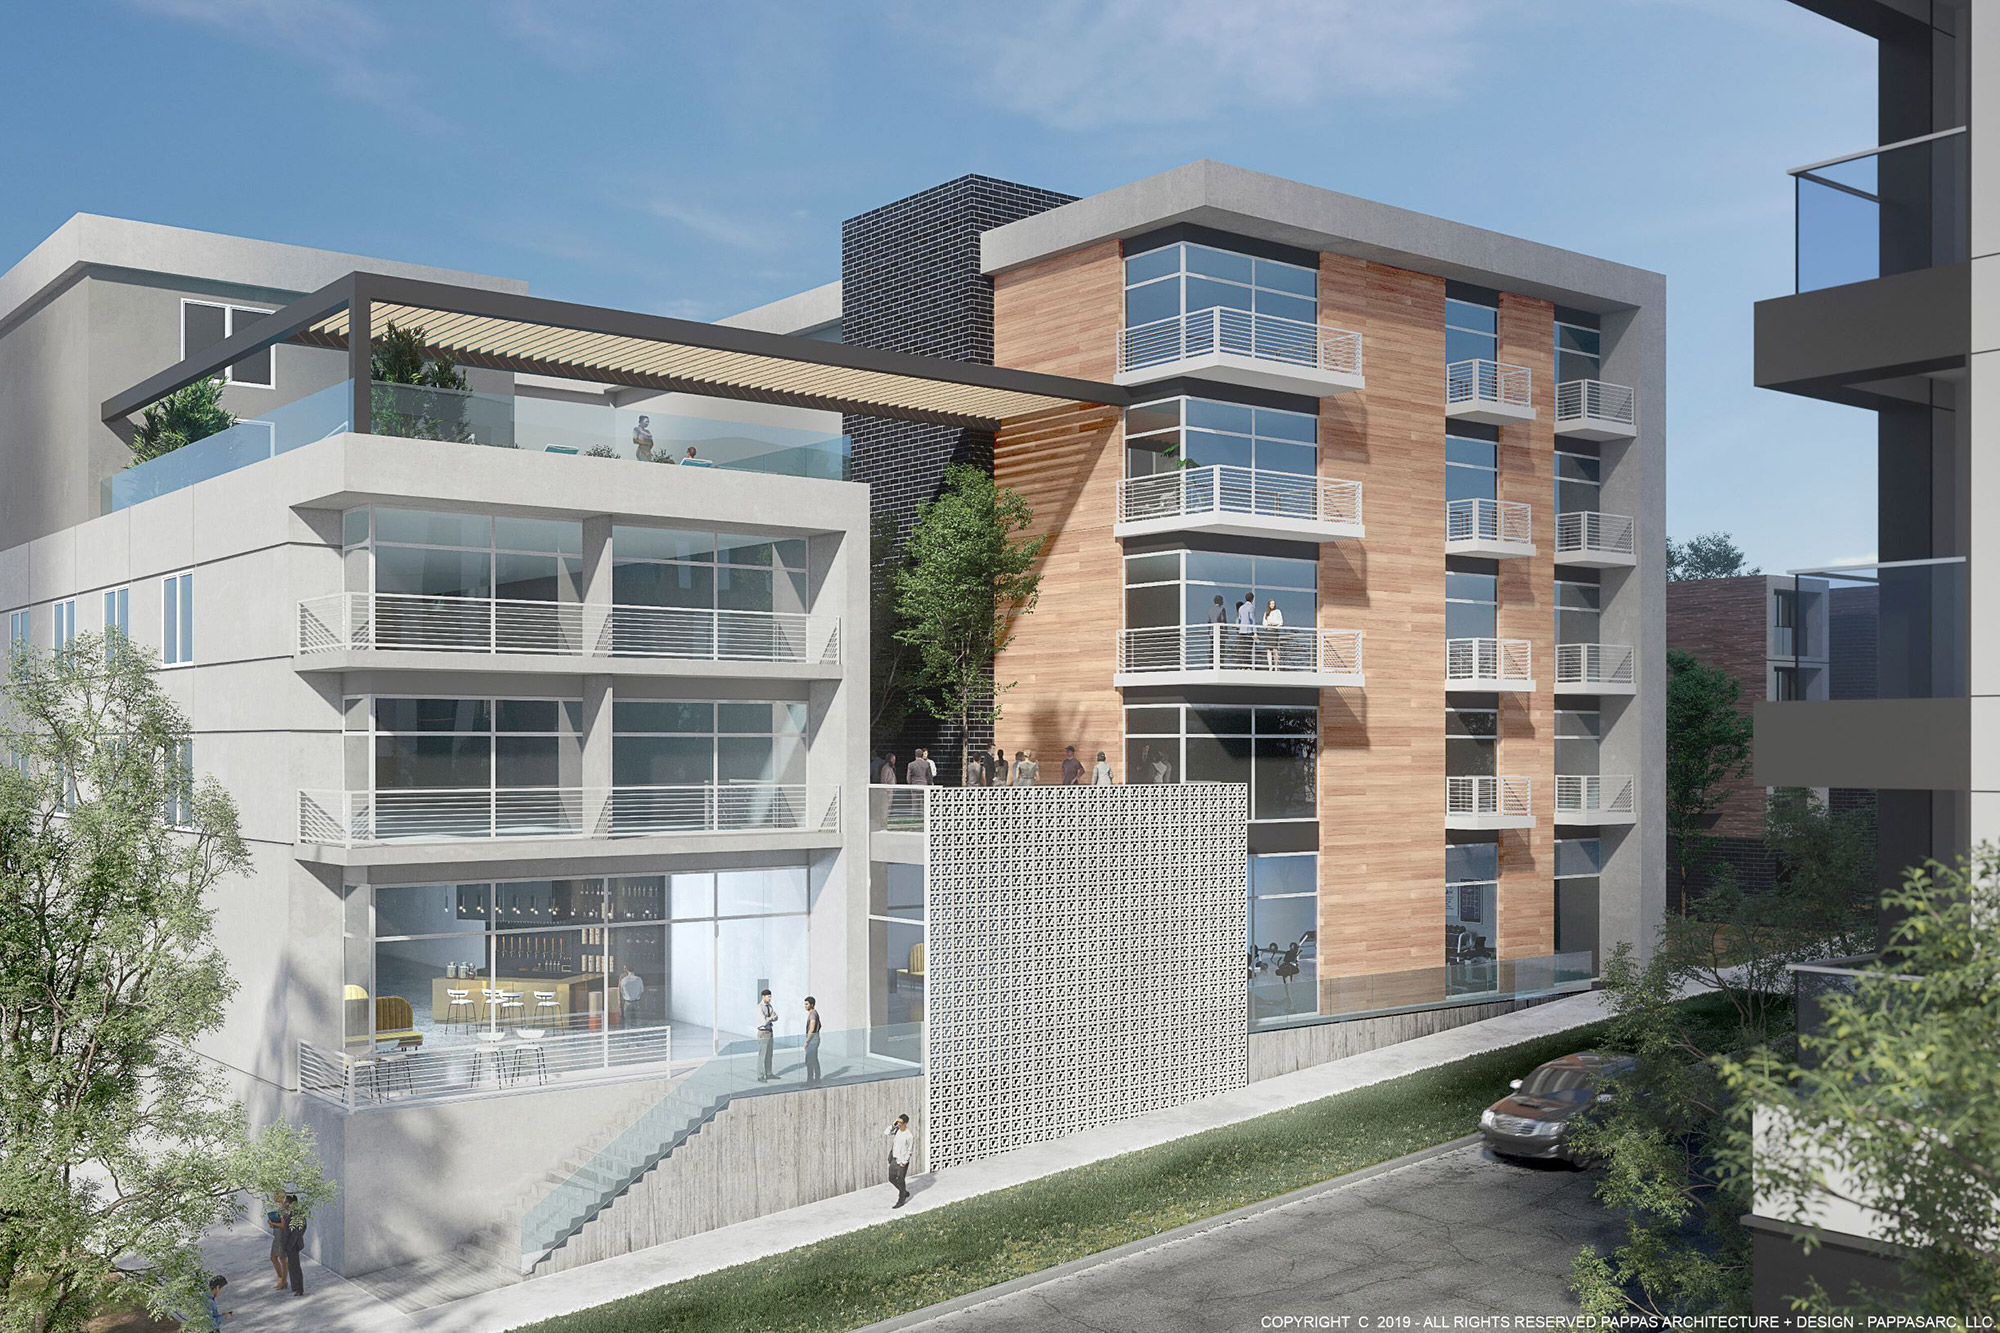 Rendering of proposed Sonder Hotel, courtesy of Pappas Architecture + Design